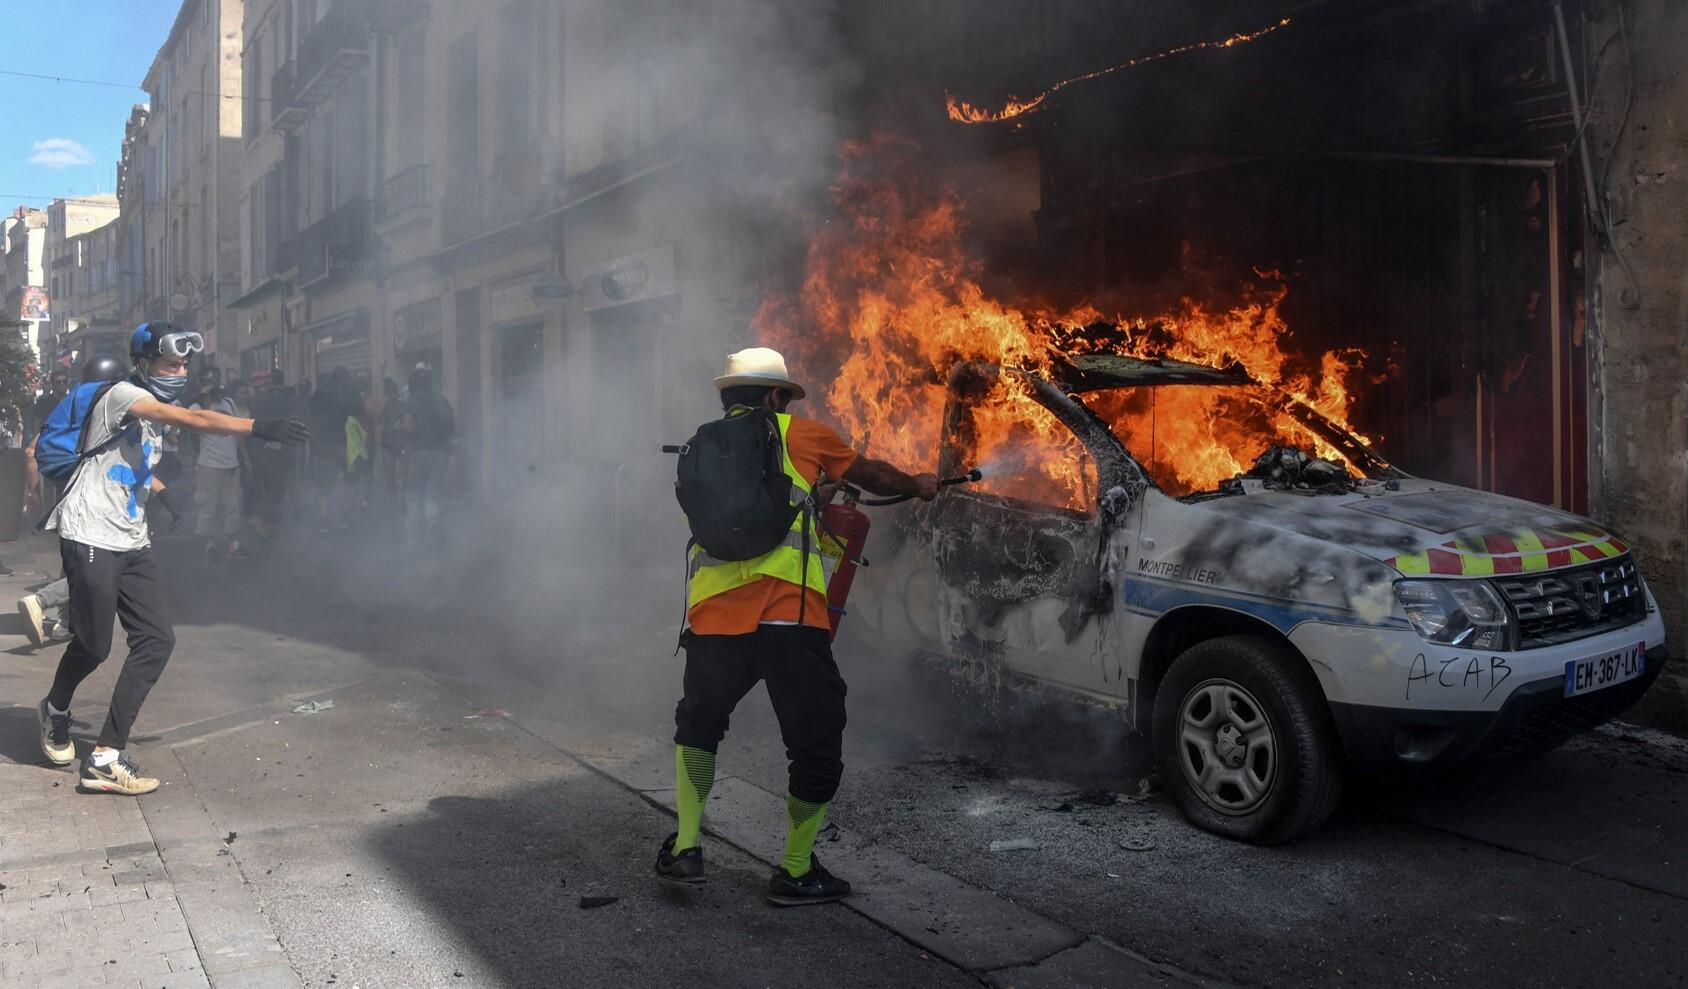 A police vehicle is set on fire in Montpellier during the resumption of Yellow Vests protest across France, 7 September 2019.